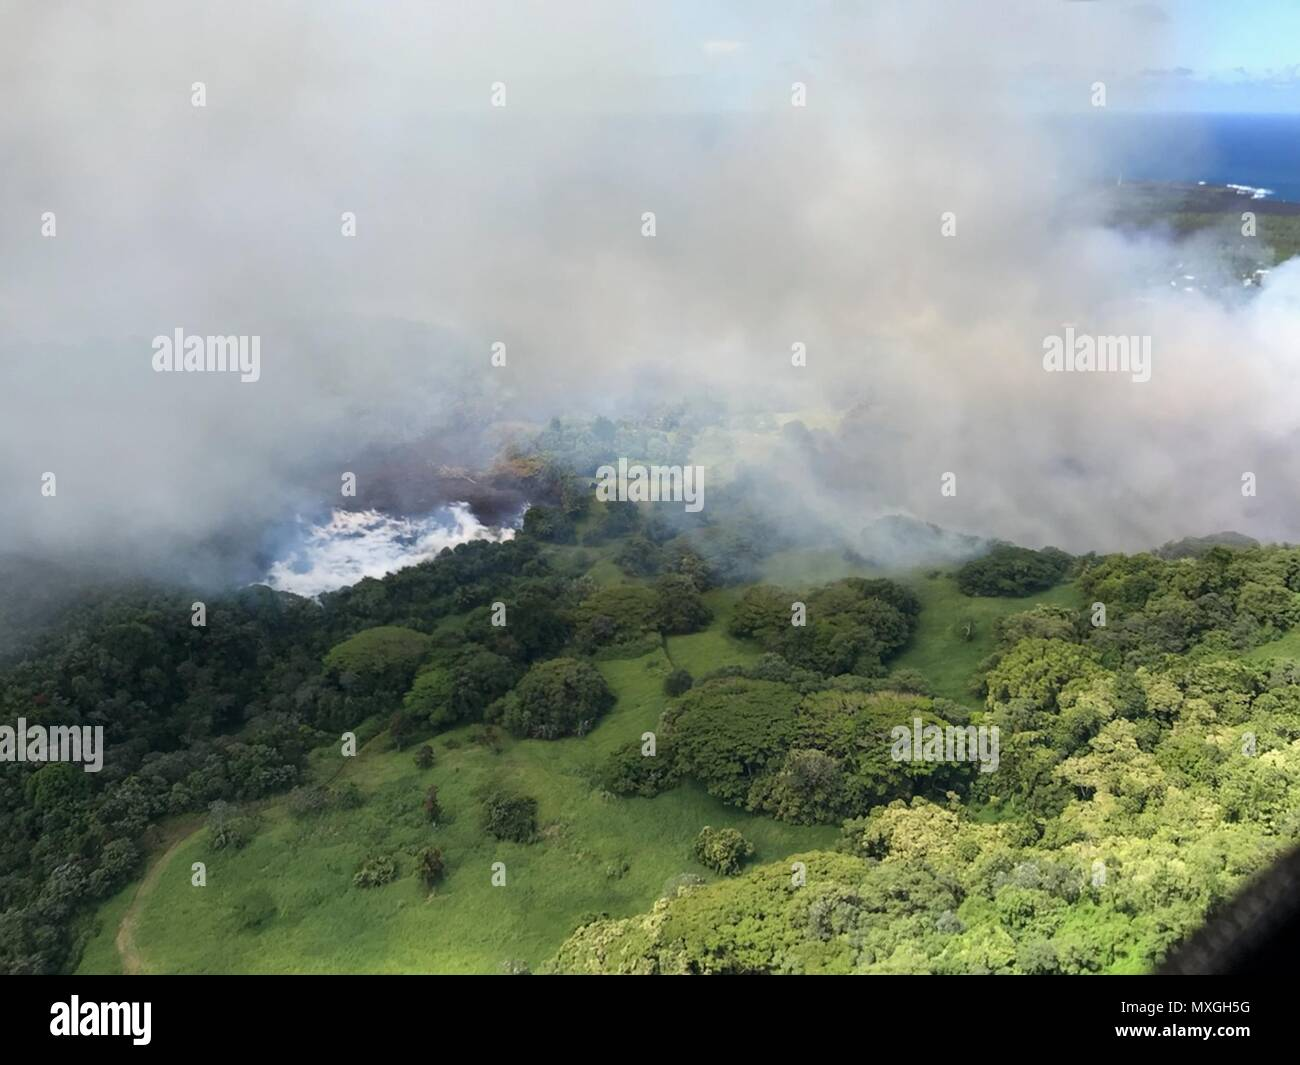 Green Lake is vaporized as lava from fissure 8 causes it to boil away sending a white plume high into the sky caused by the eruption of the Kilauea volcano June 2, 2018 in Hawaii. The recent eruption continues destroying homes, forcing evacuations and spewing lava and poison gas on the Big Island of Hawaii. - Stock Image